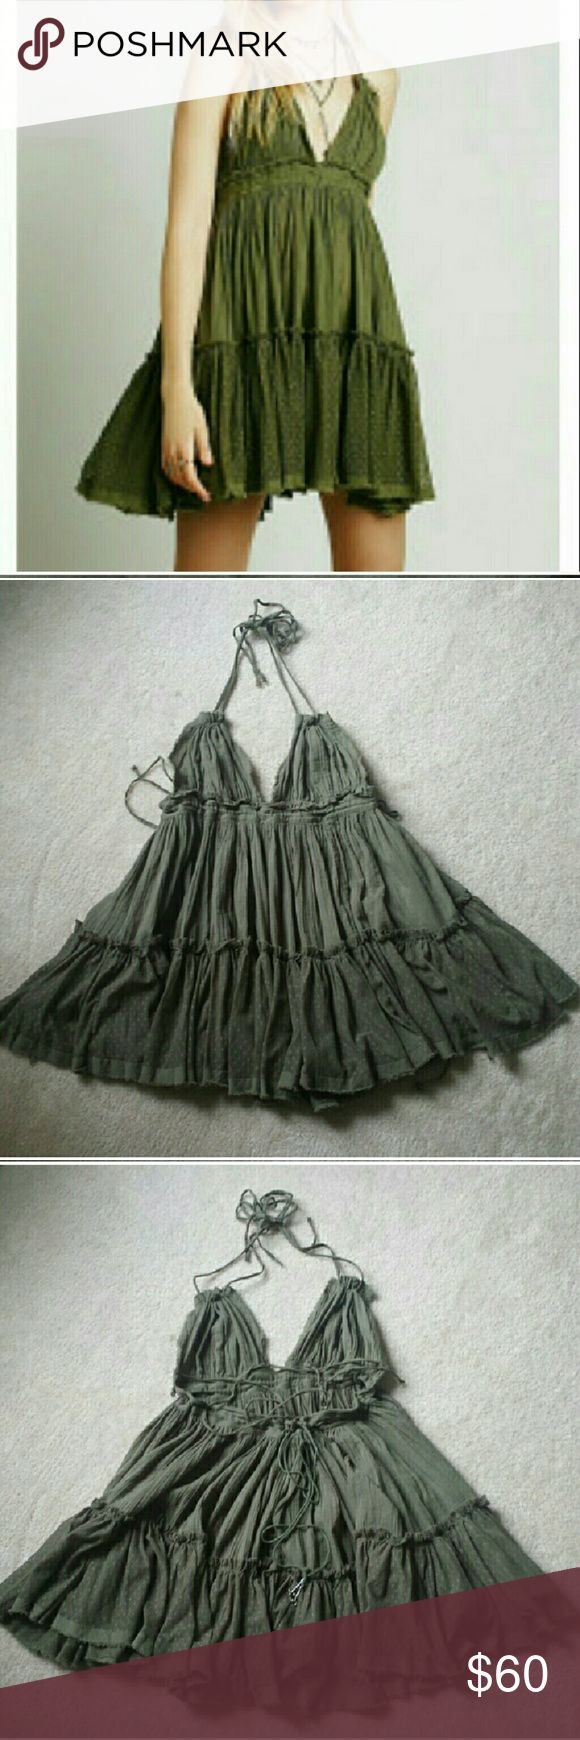 Free People 100 Degrees Dress Color is light army. Ties at neck and back. Tie under bust has small bells on the end. Dotted mesh skirt and raw edge fabric hem. In like new condition. Free People Dresses